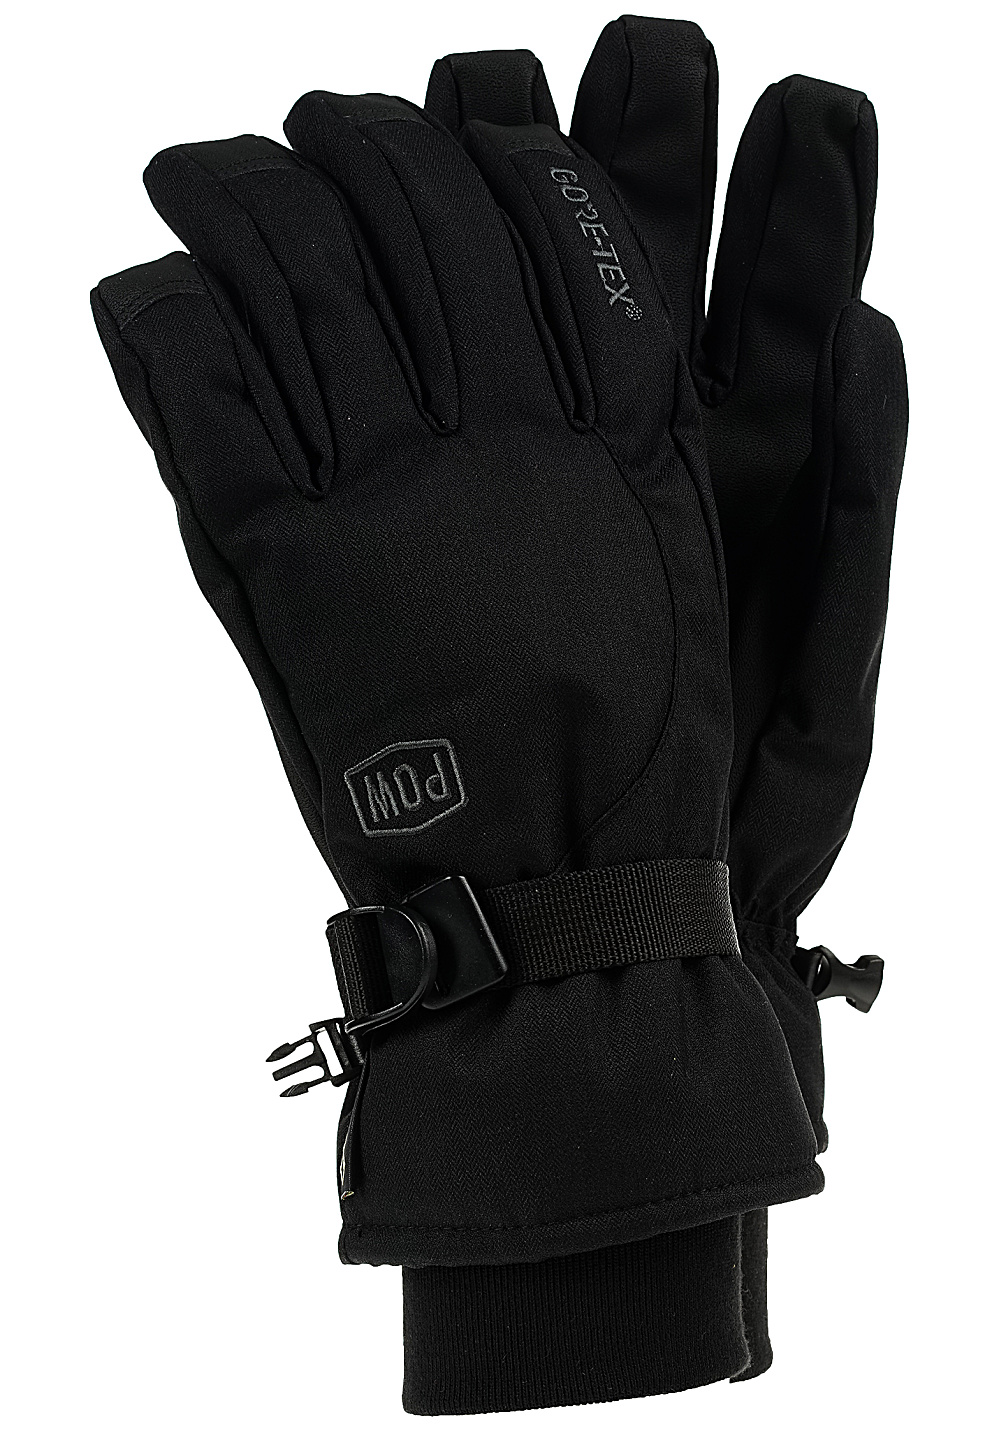 POW Trench GTX Glove - Black